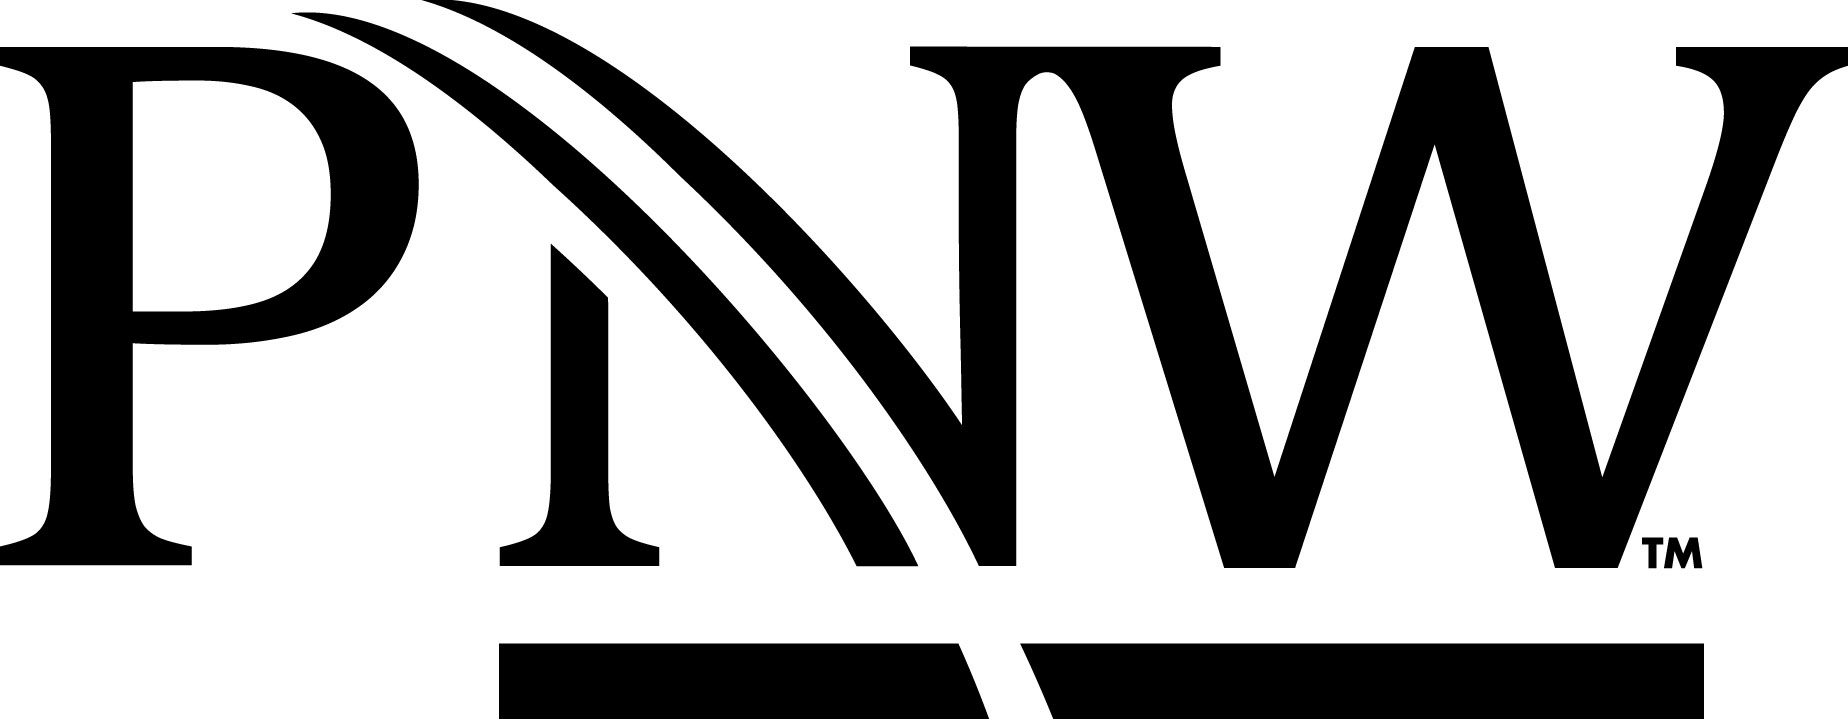 Purdue university northwest clipart black and white download Download PNW Logos – Marketing & Communications download